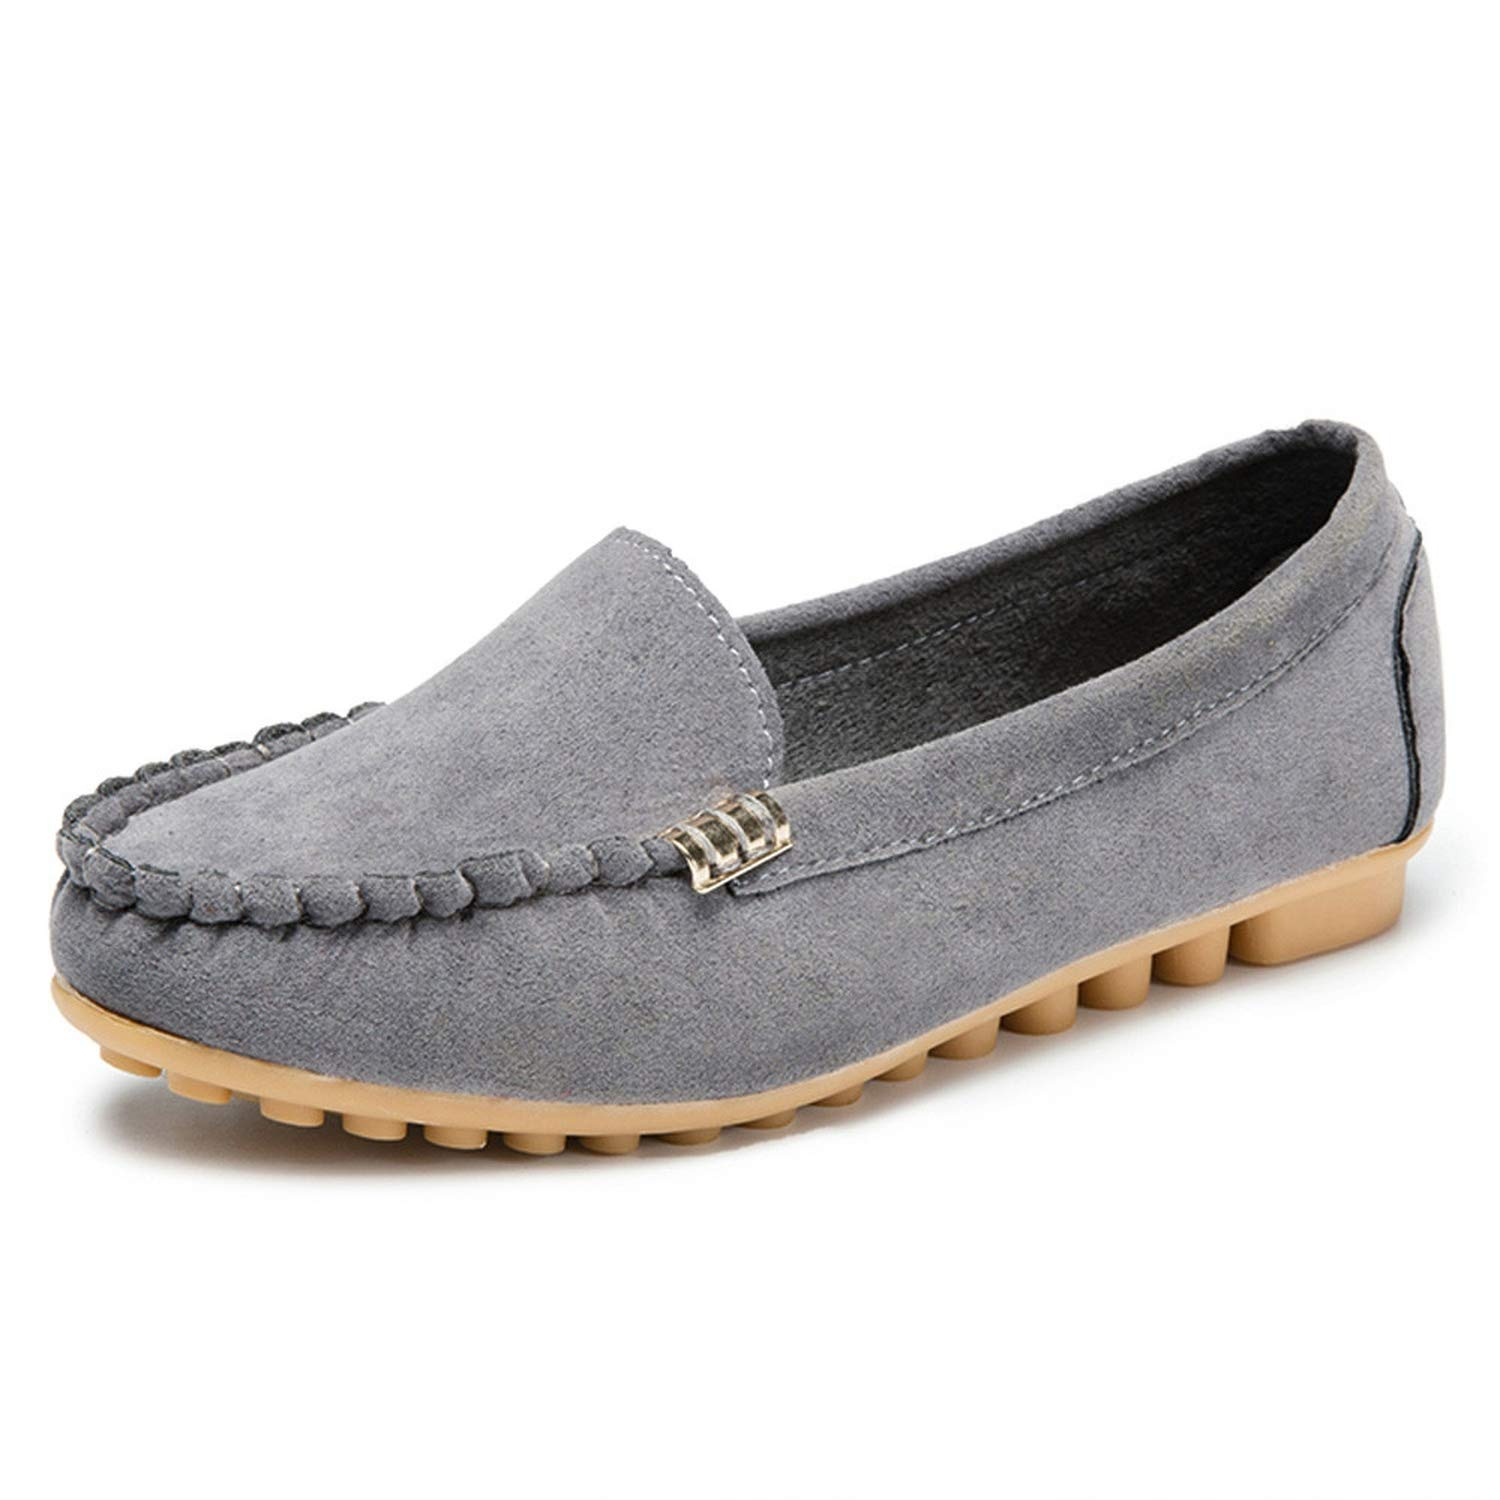 Collocation-Online Shallow Flats 2019 Womens Pumps Shoes Ladies Comfy Ballet Shoes Soft Slip-On Casual Boat Shoes,Gray,38,C